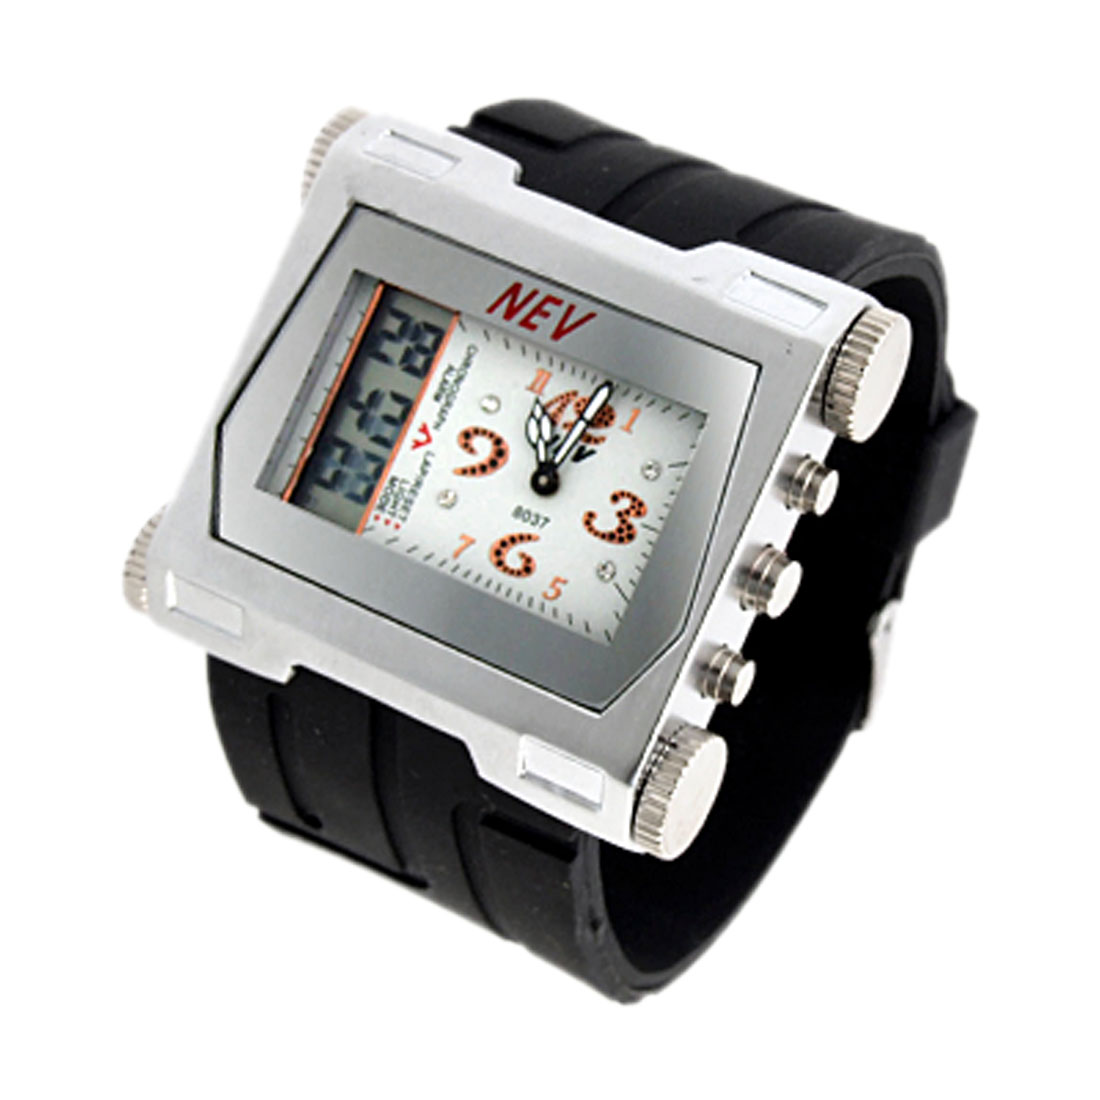 Unique Cube Case 2 in 1 Digital and Quartz Sports Wristwatch with Black Band